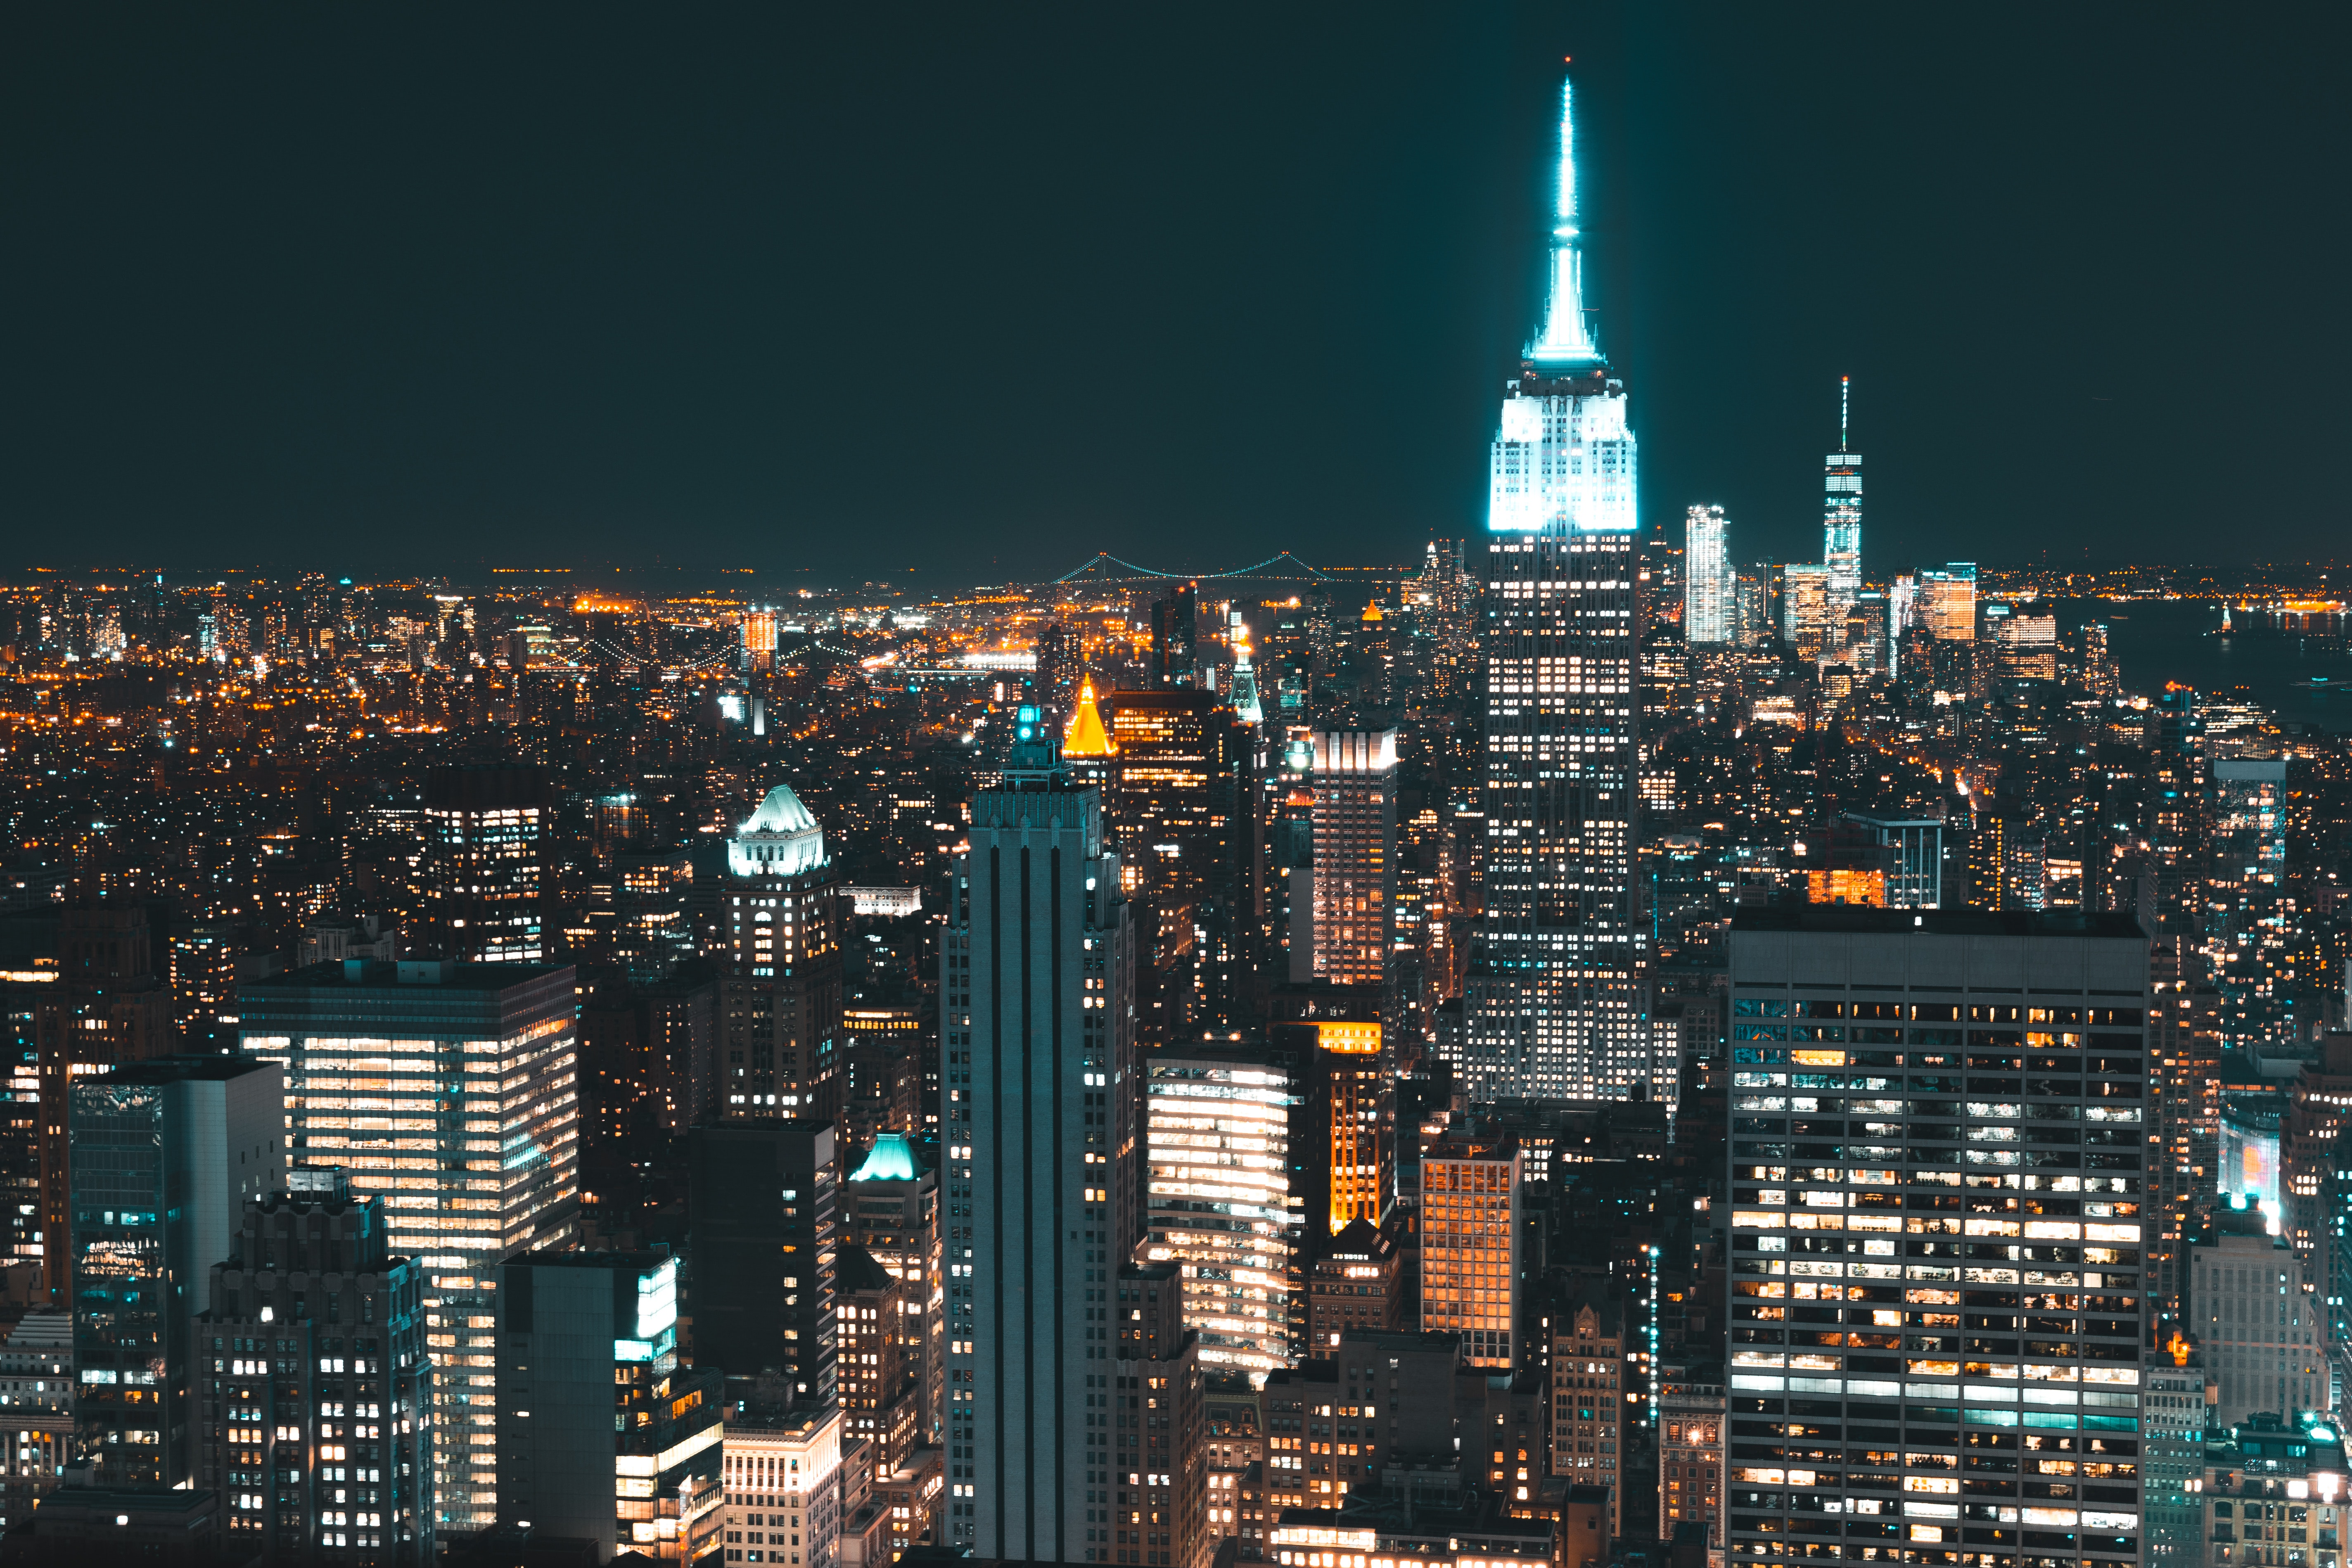 Lit Skyscrapers During Nighttime Free Stock Photo